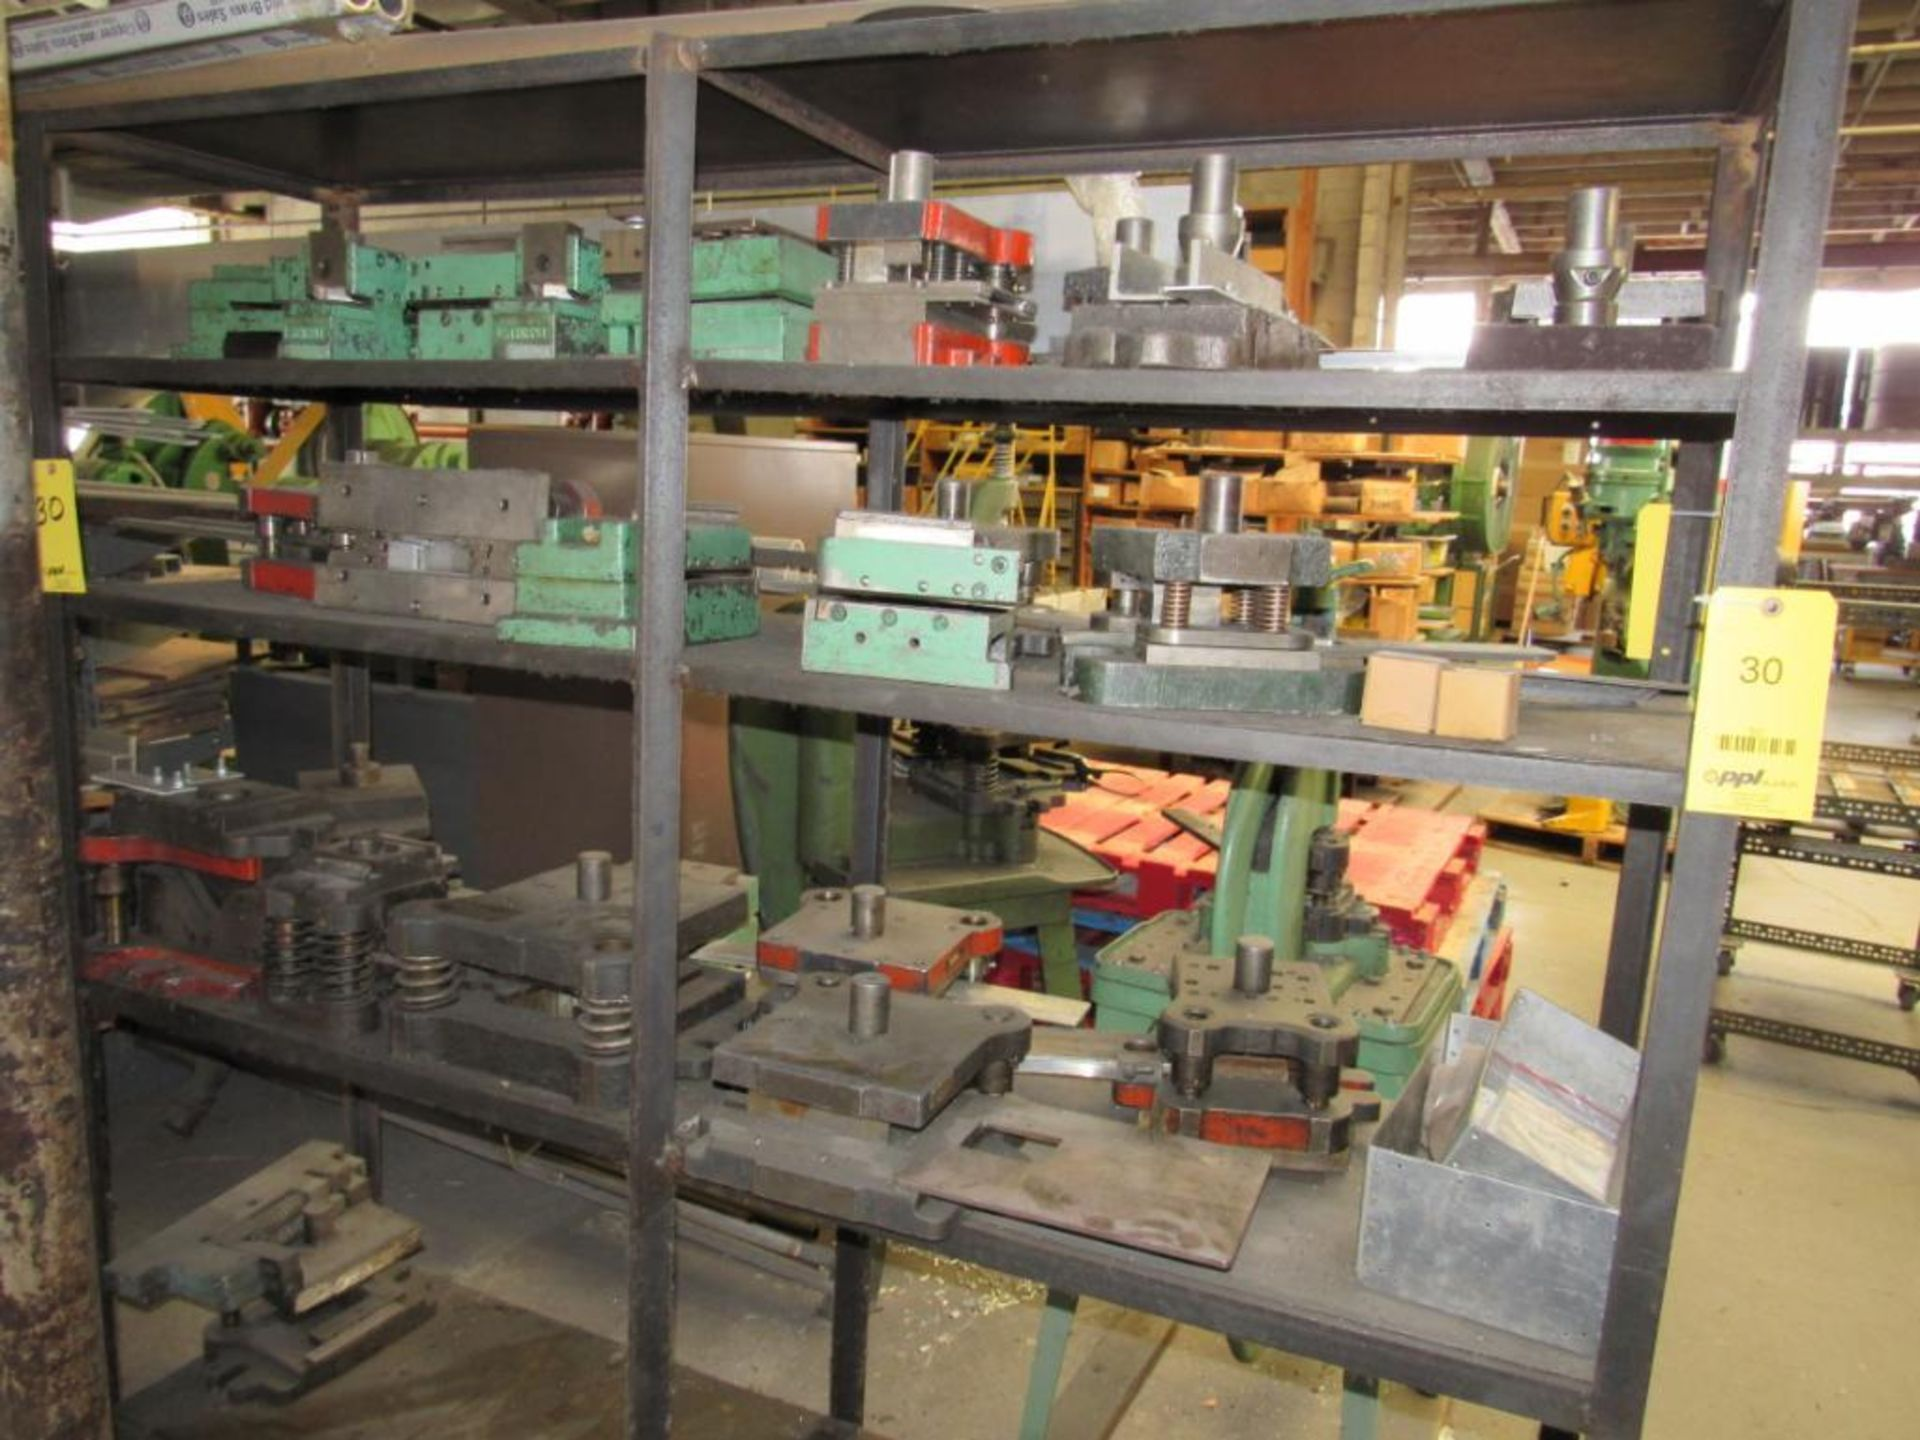 Lot 30 - LOT: Assorted Dies on Steel Shelf